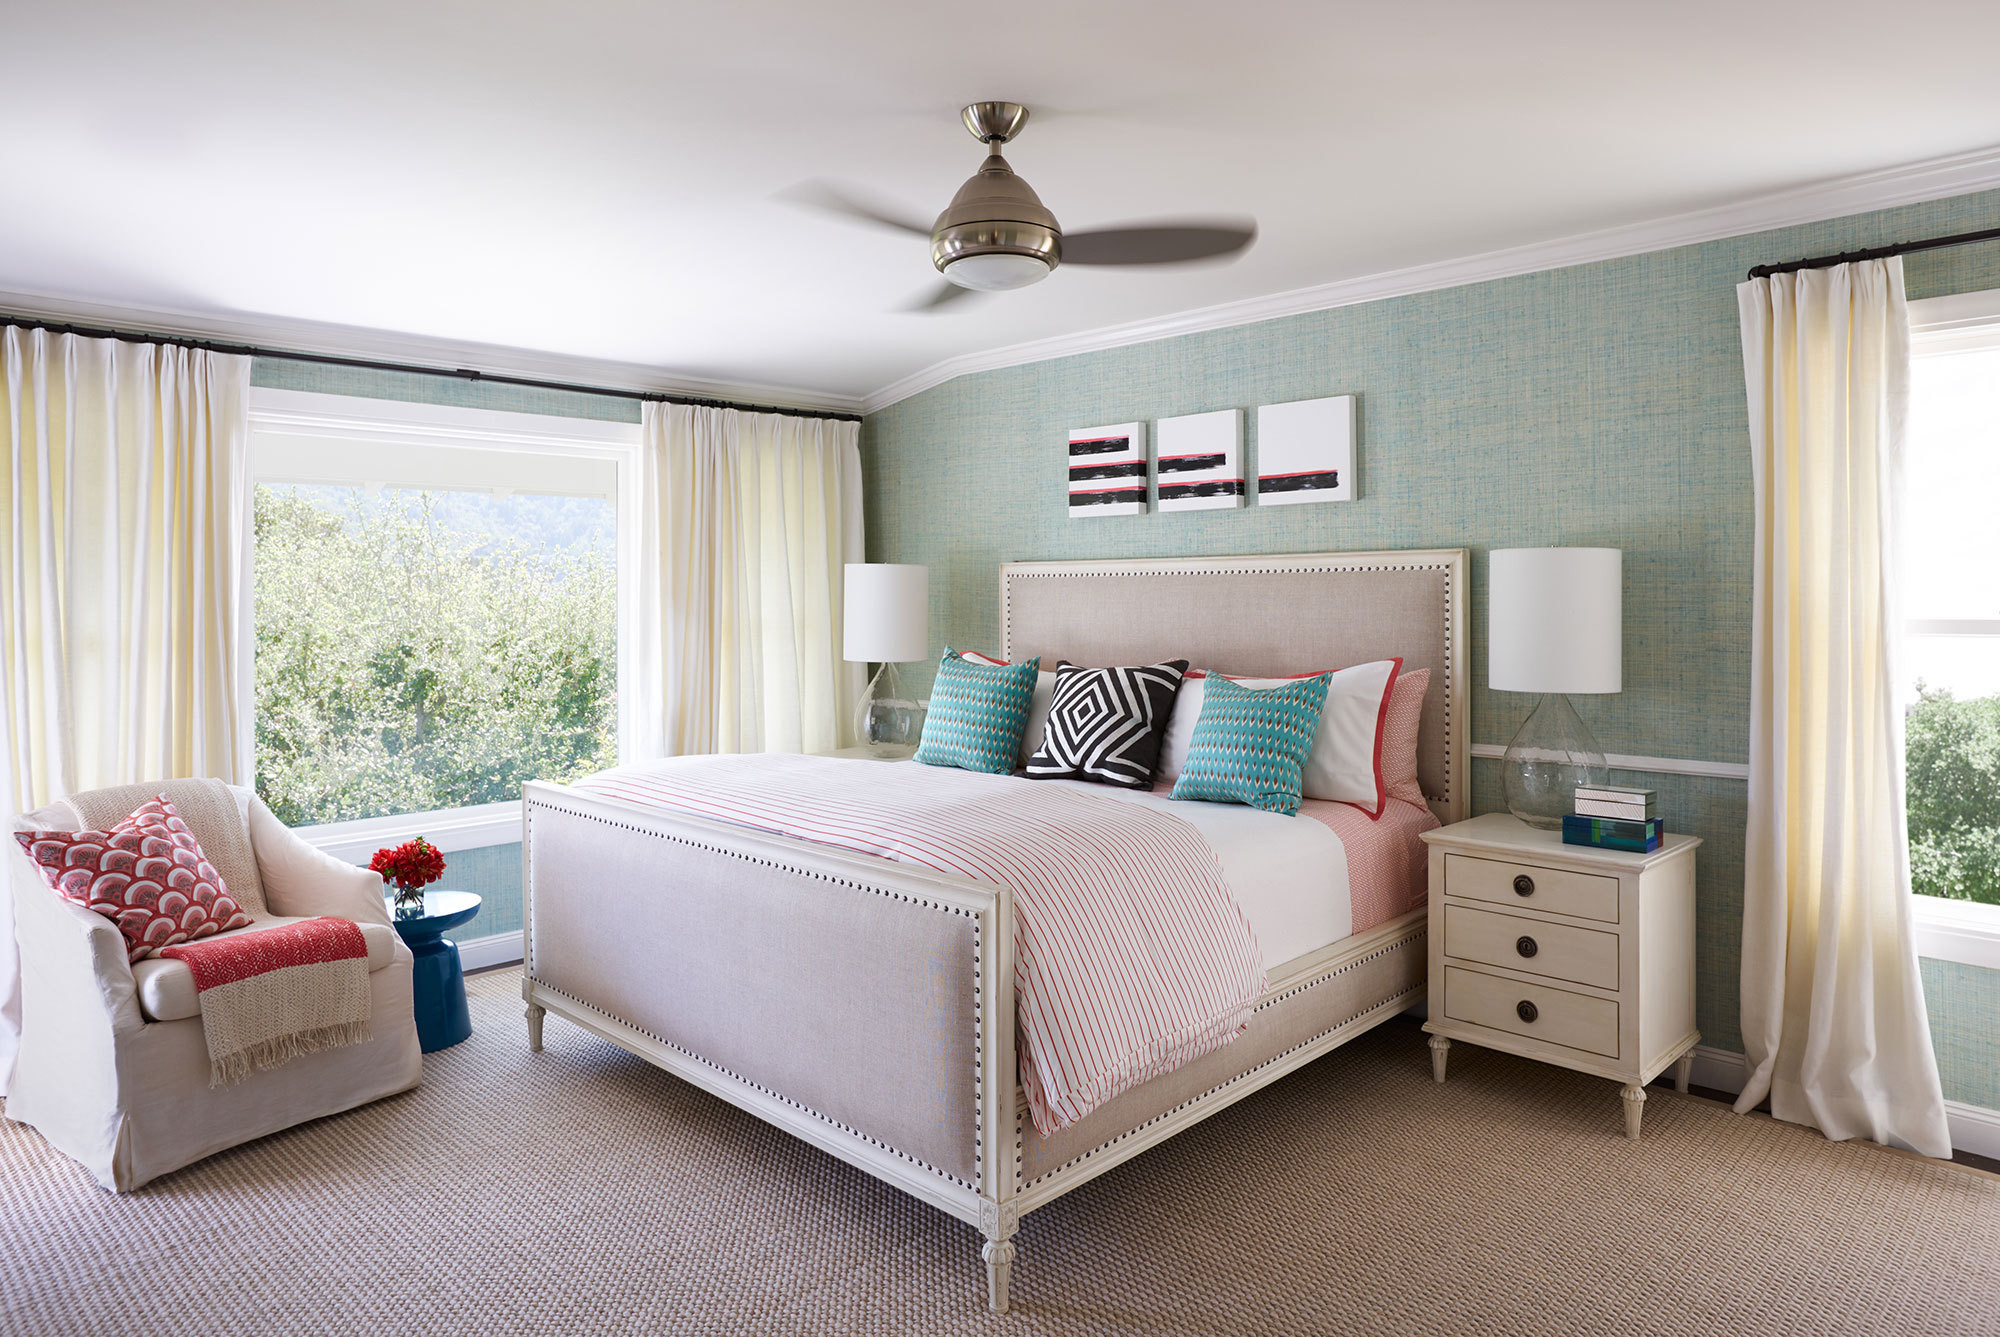 The master bedroom is a serene oasis to unwind and relax for the parents of two young boys.